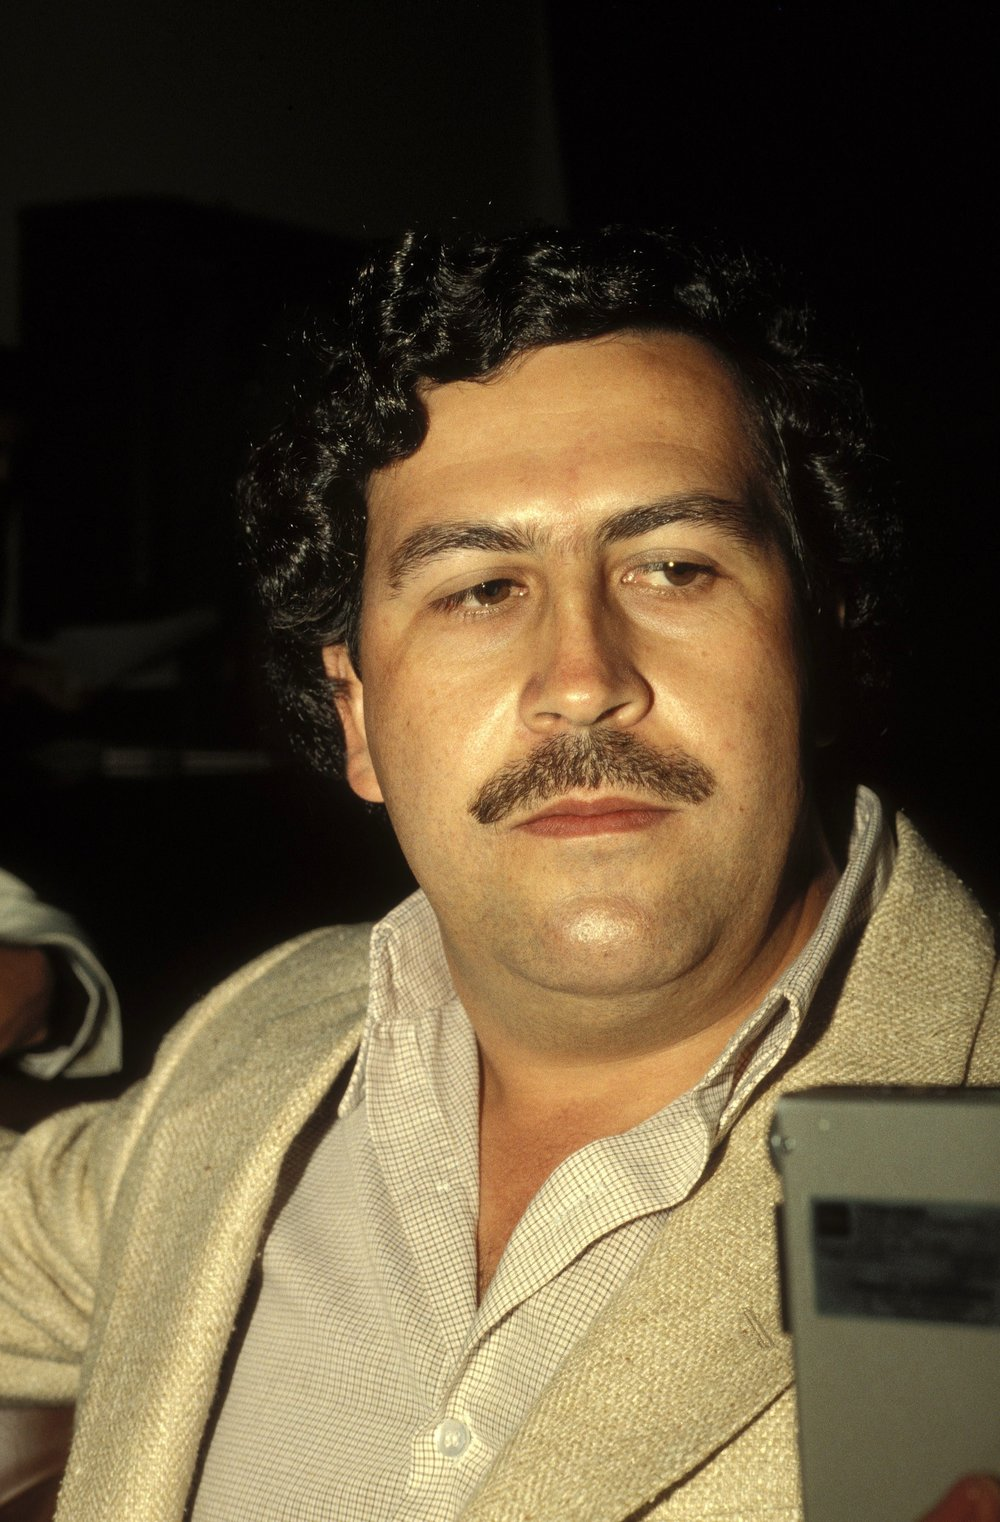 Before Pablo Escobar turned himself in to Colombian authorities in 1991, he designed and built his own private prison, La Catedral. It included a small football pitch, where Escobar's favorite footballers — including players from the national team — were often invited to play.  Photo by Eric Vandeville/Gamma-Rapho